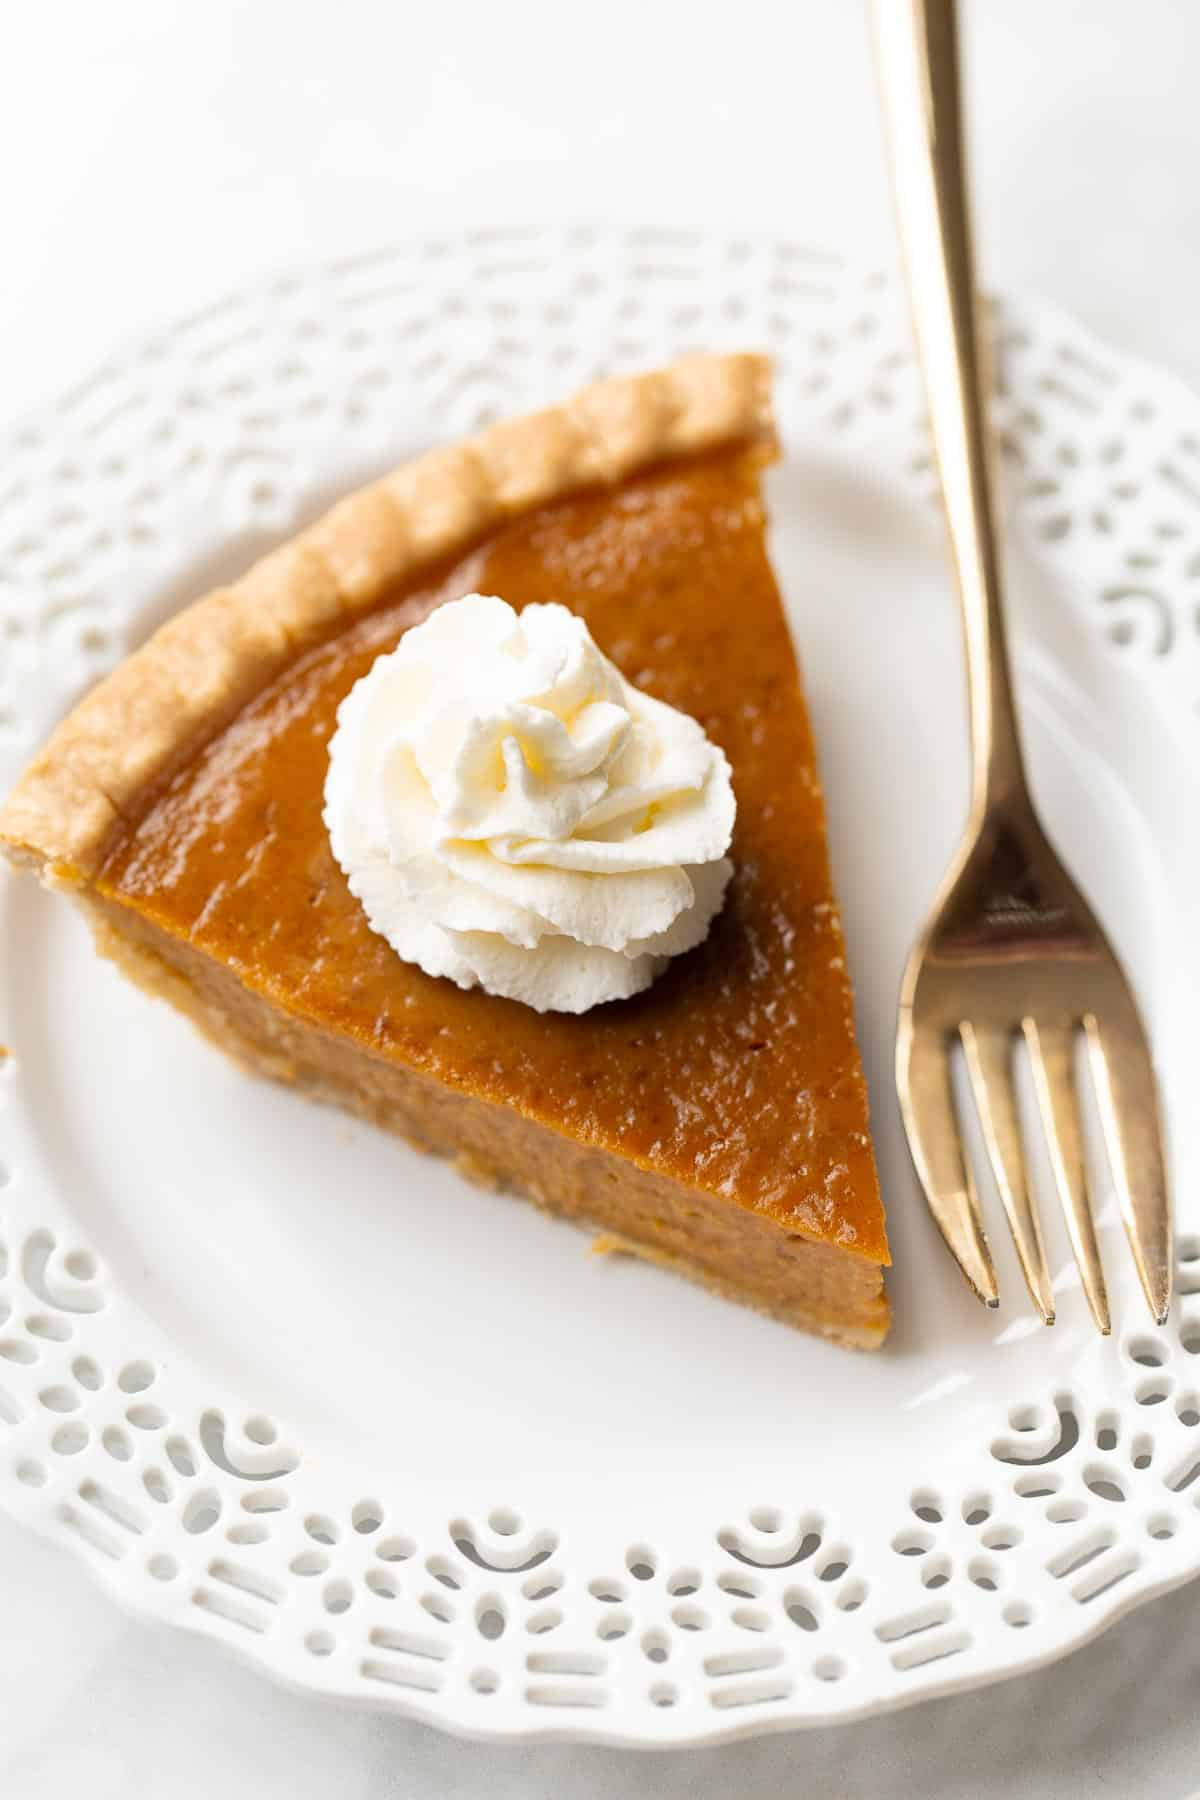 Slice of pumpkin pie topped with whipped cream next to a gold fork